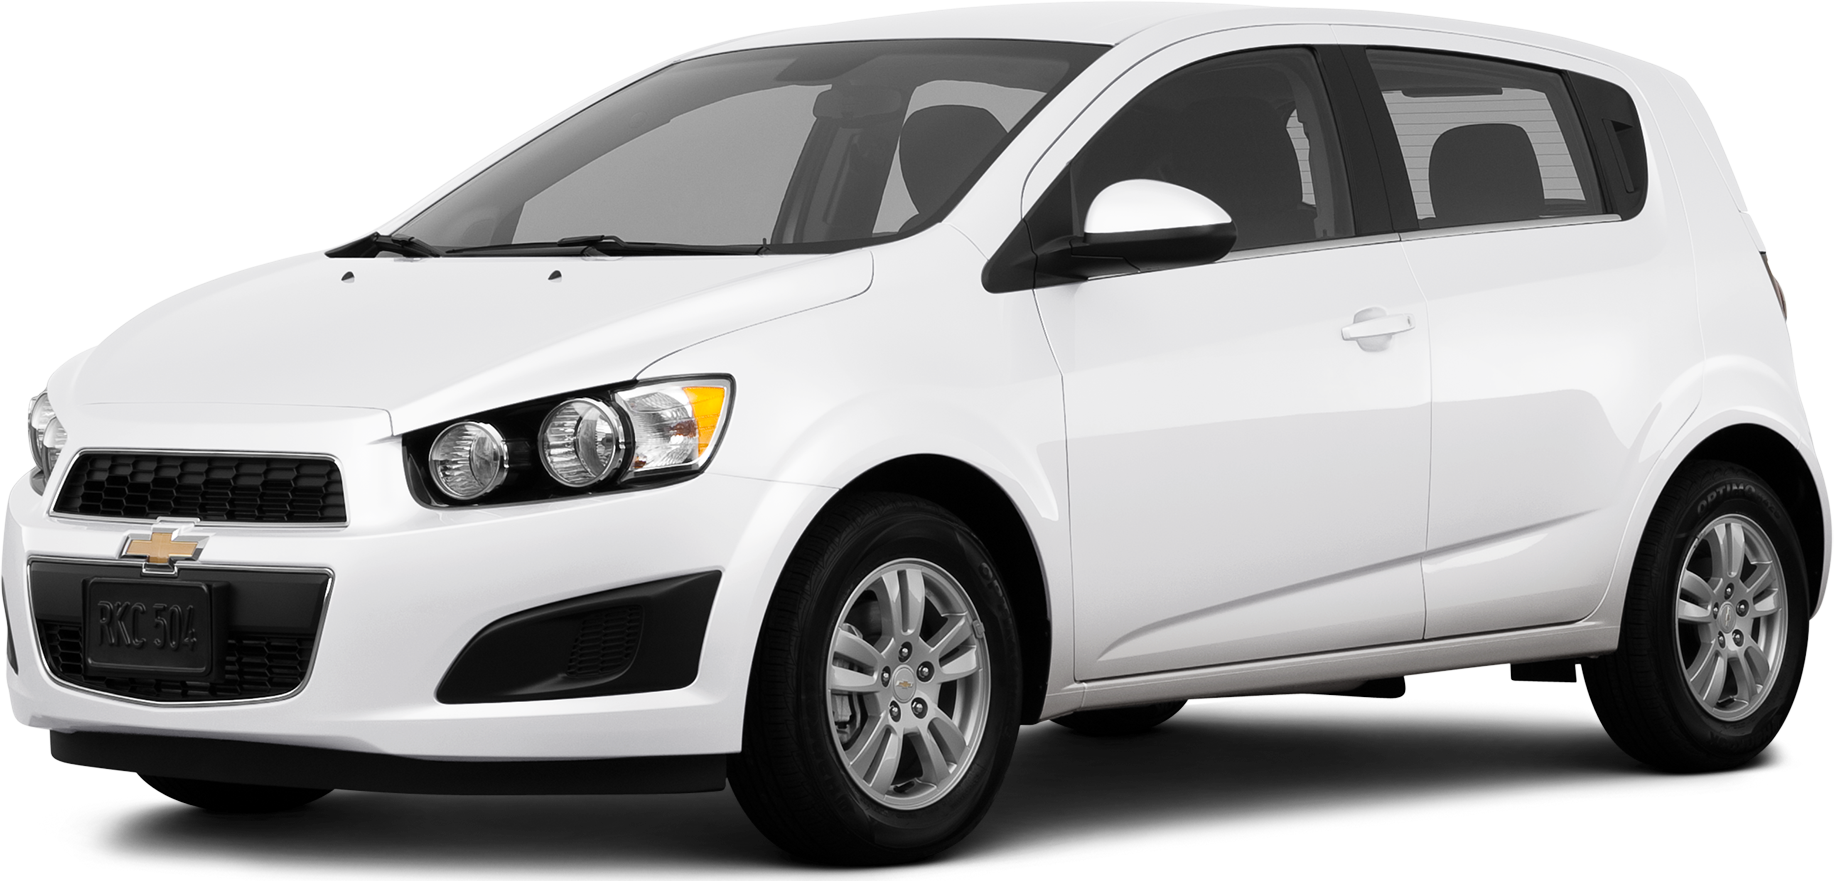 Used 2013 Chevrolet Sonic Values Cars For Sale Kelley Blue Book